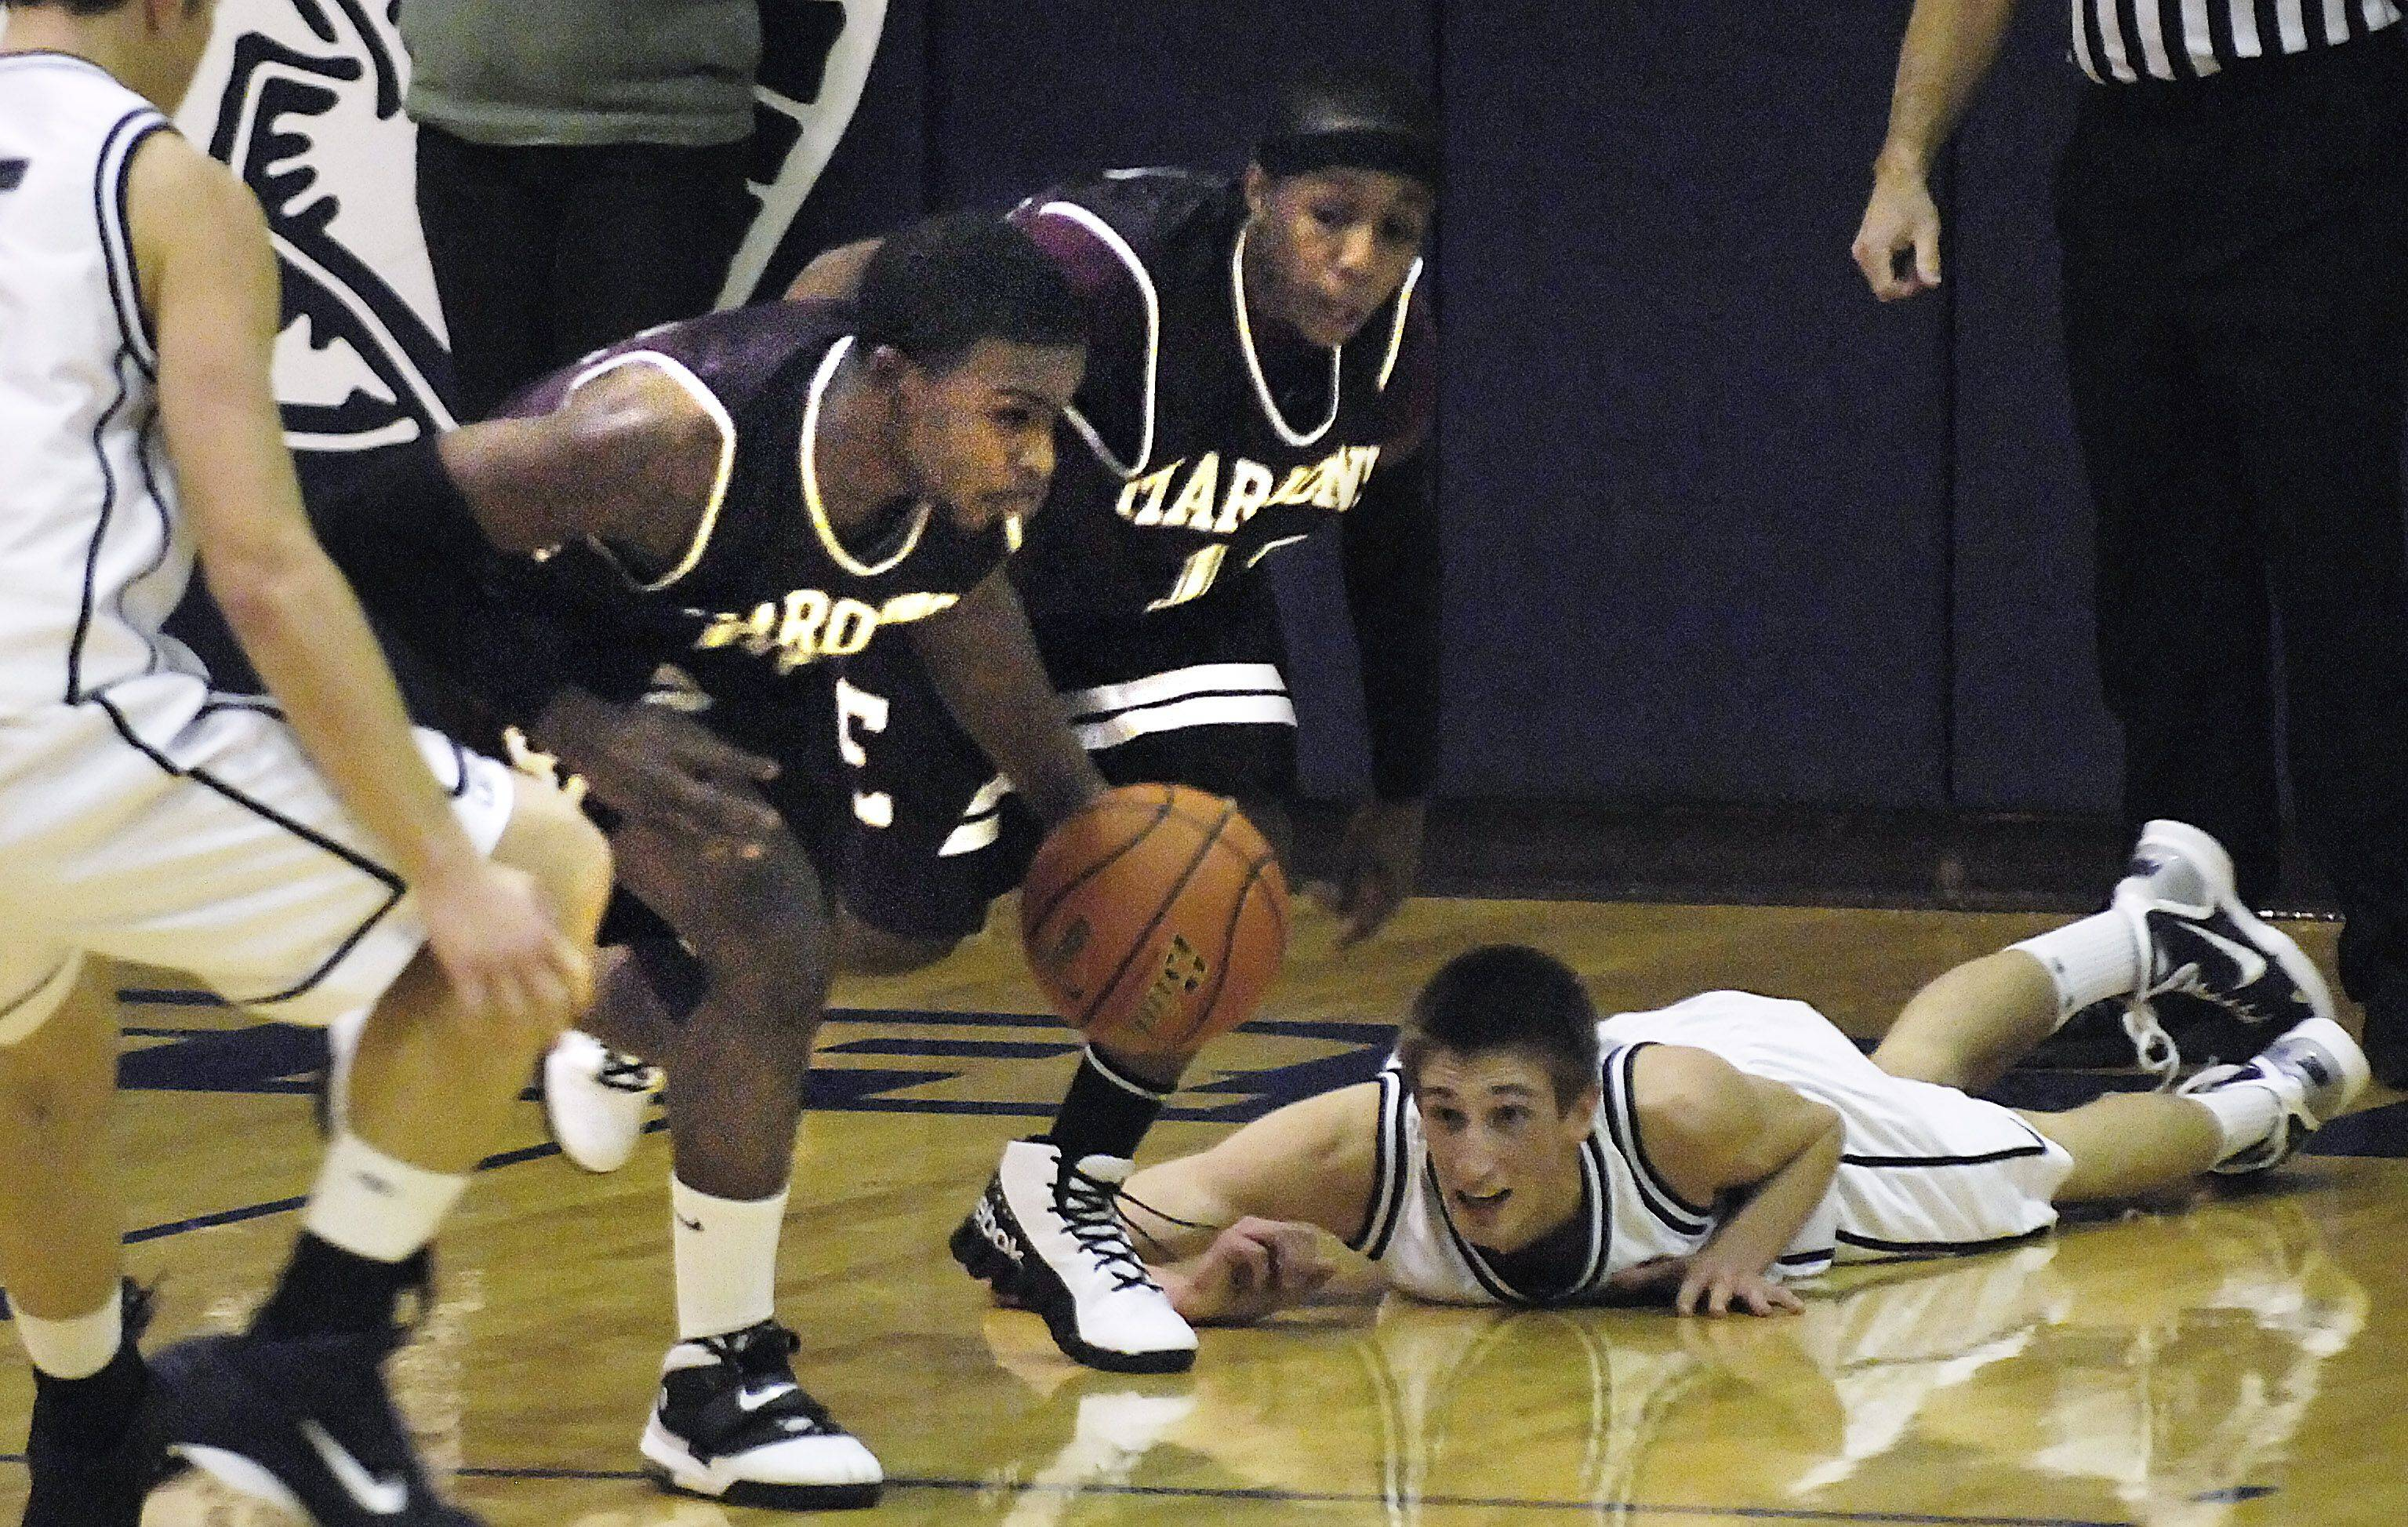 Cary-Grove's Matt Aulert watches from the floor as Elgin's Jordan Dean runs away with a loose ball .